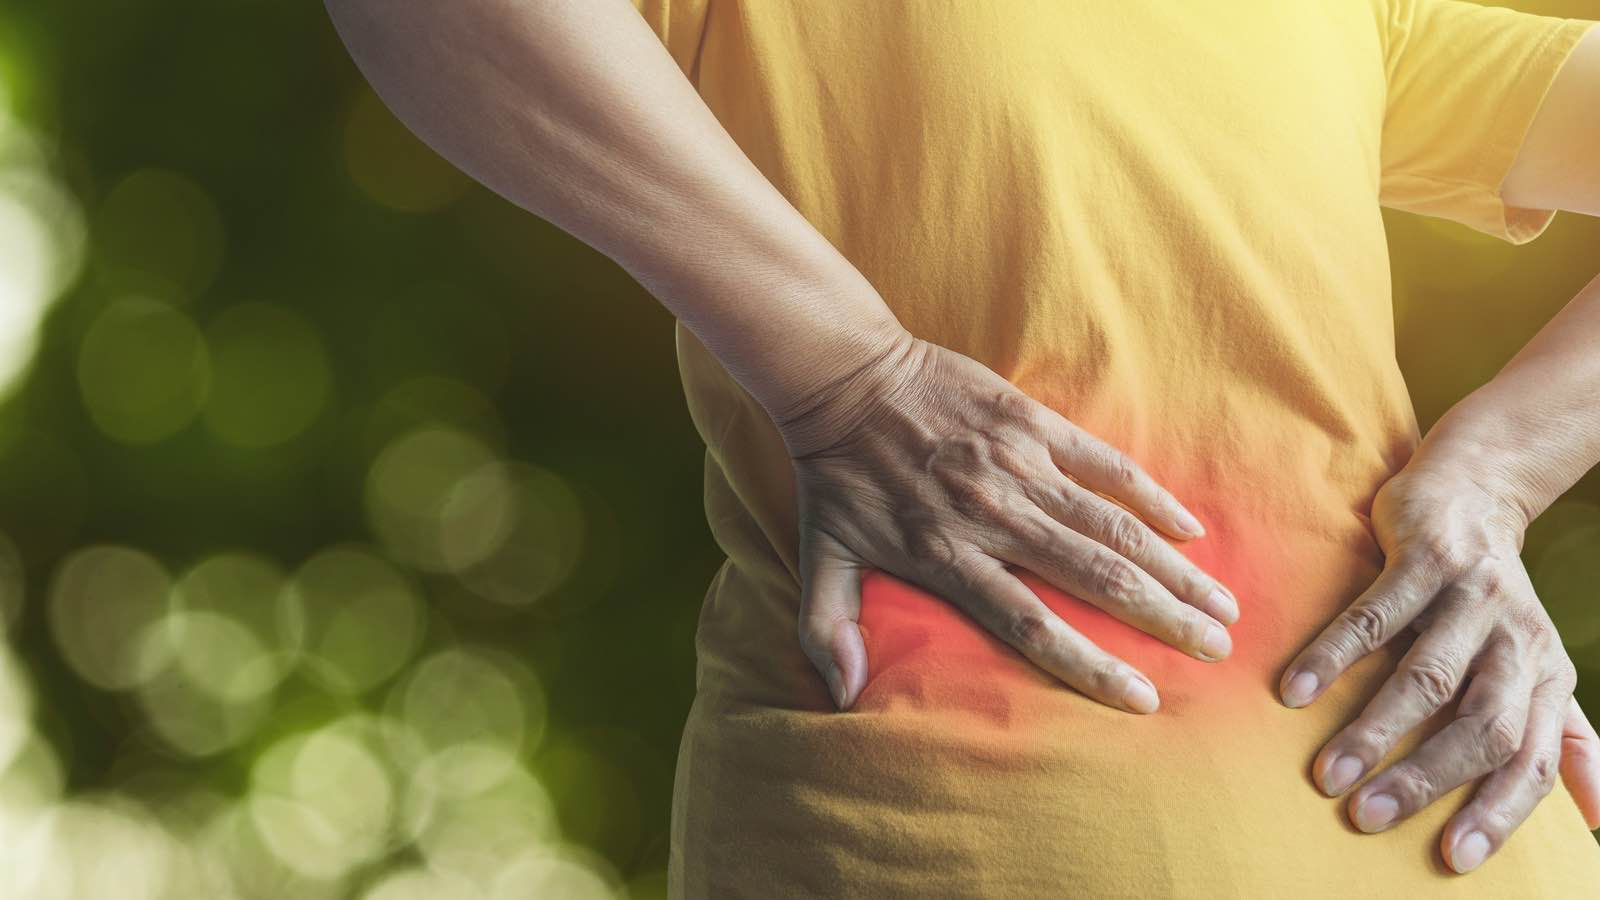 Low Back Pain Assessment and Prognosis - Learn to predict outcomes when treating low back pain